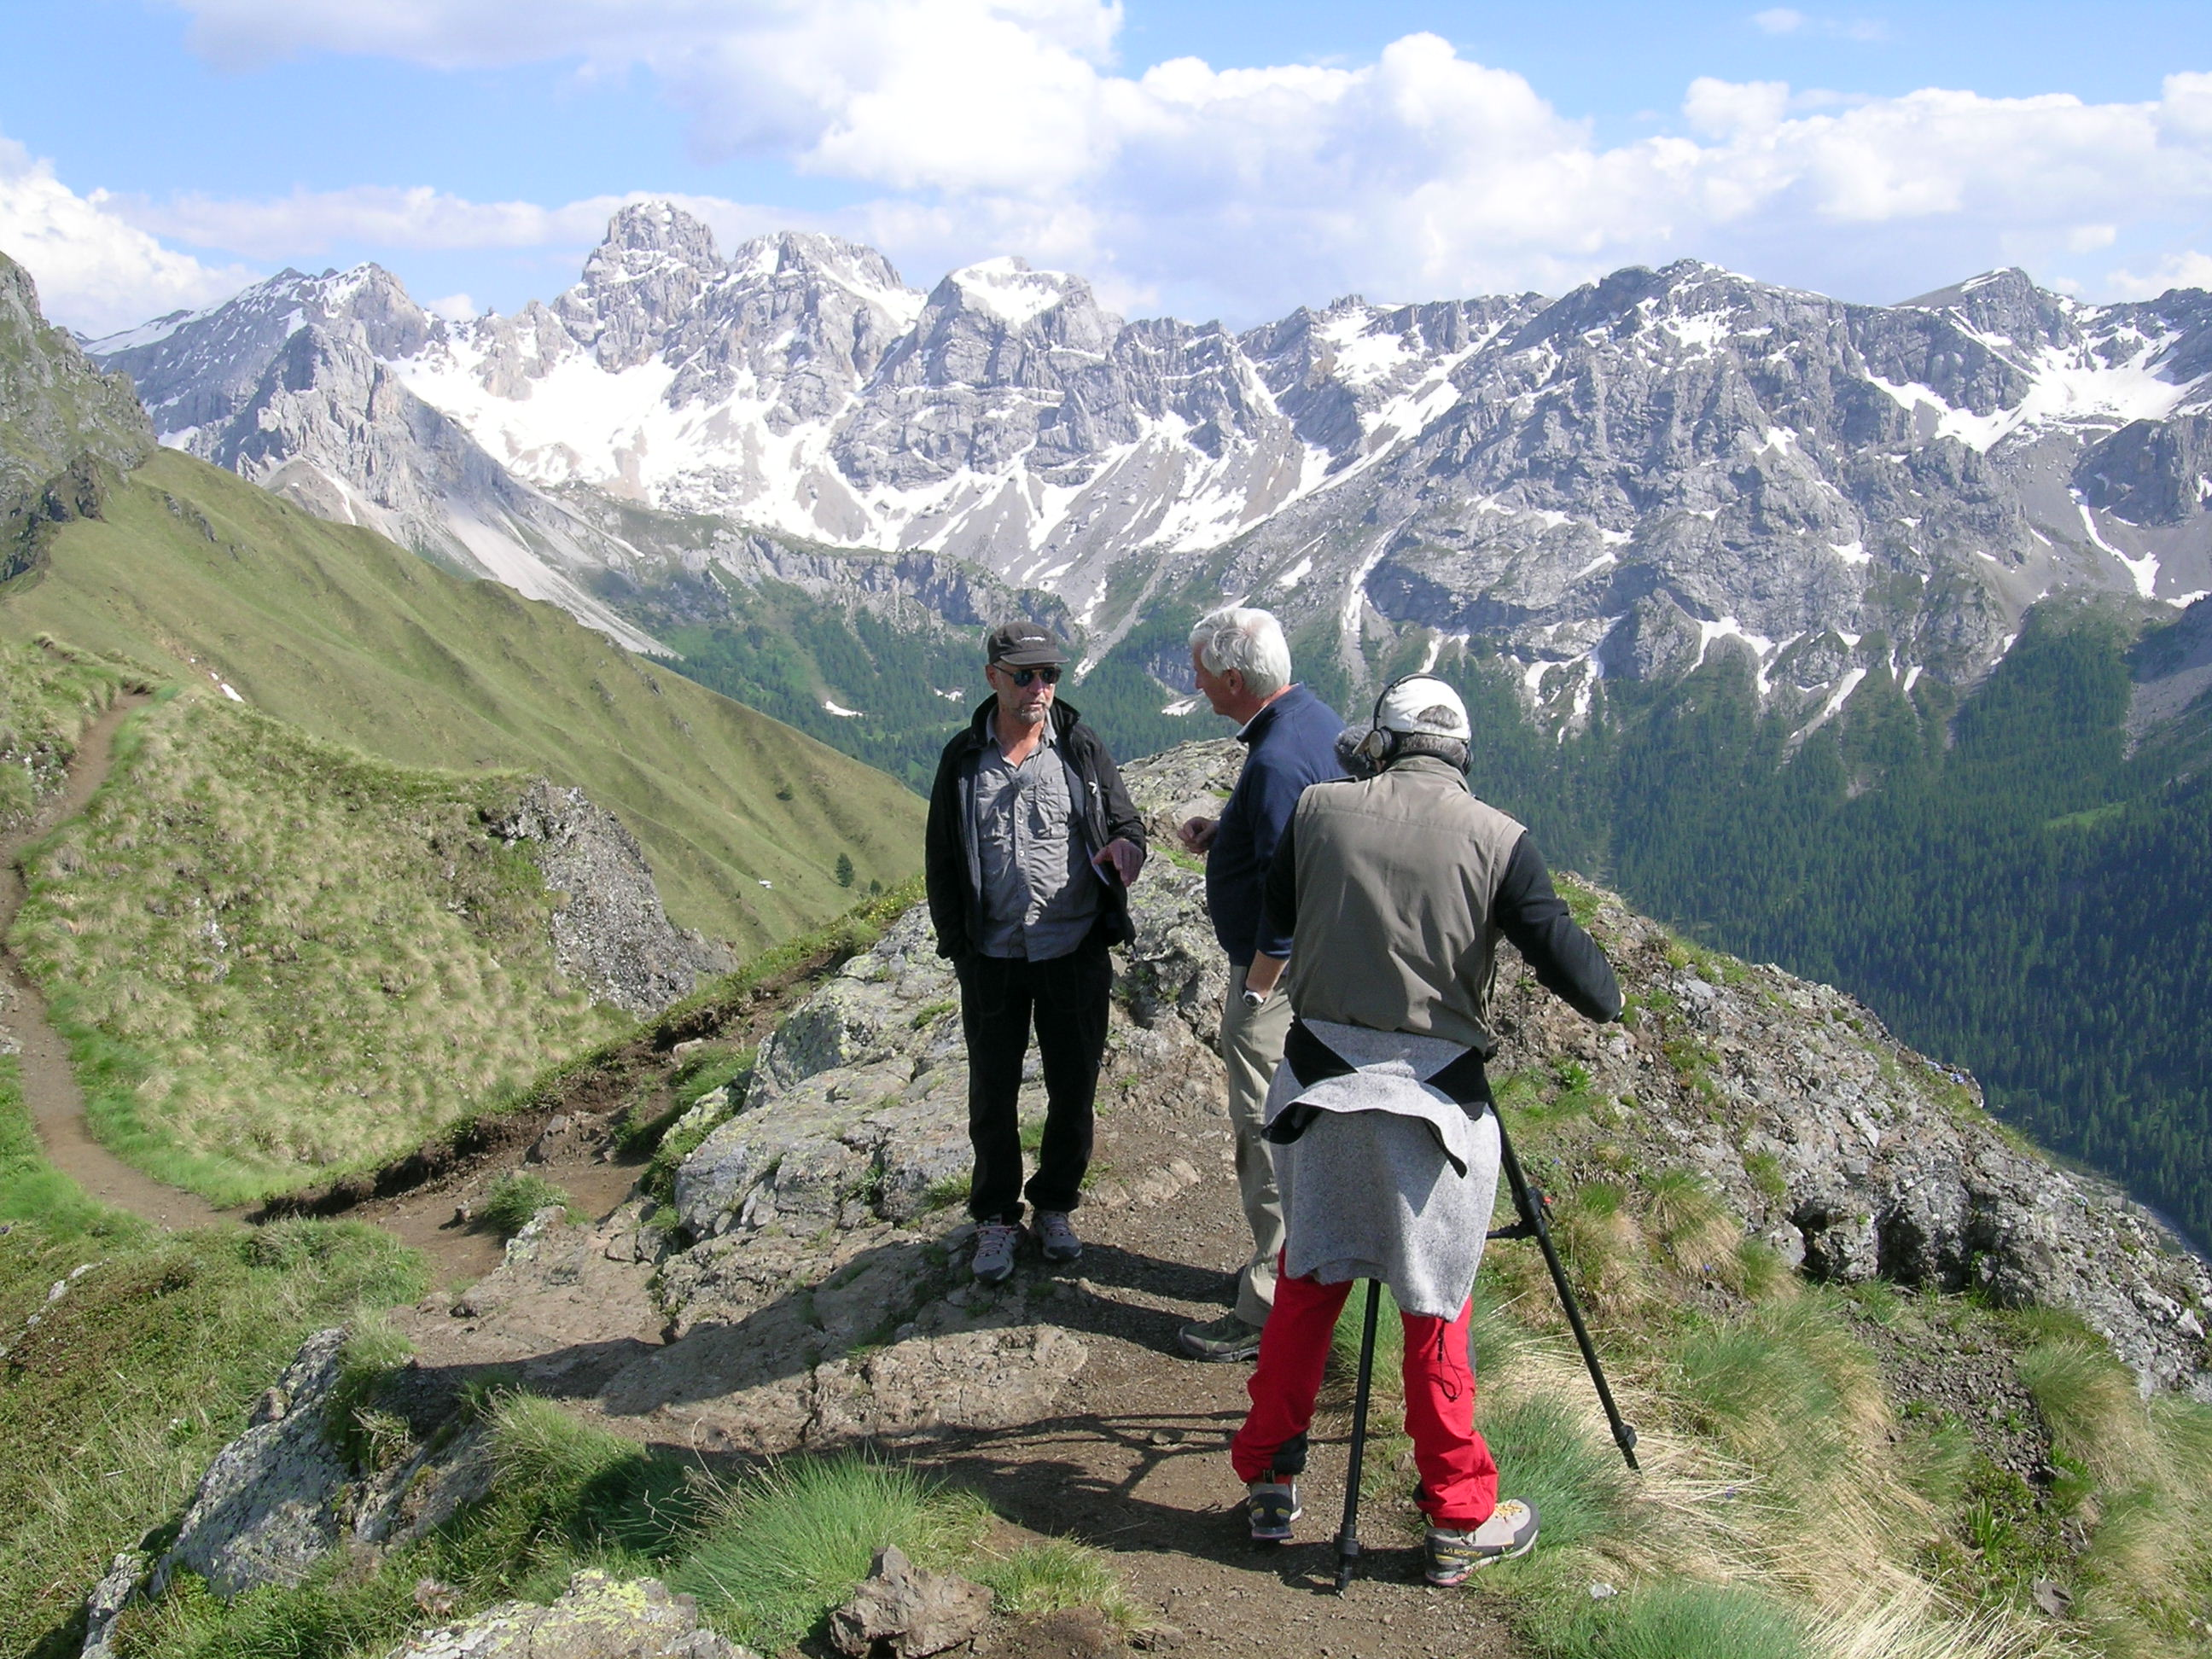 Making of Reportage Badaloni Dolomiti UNESCO